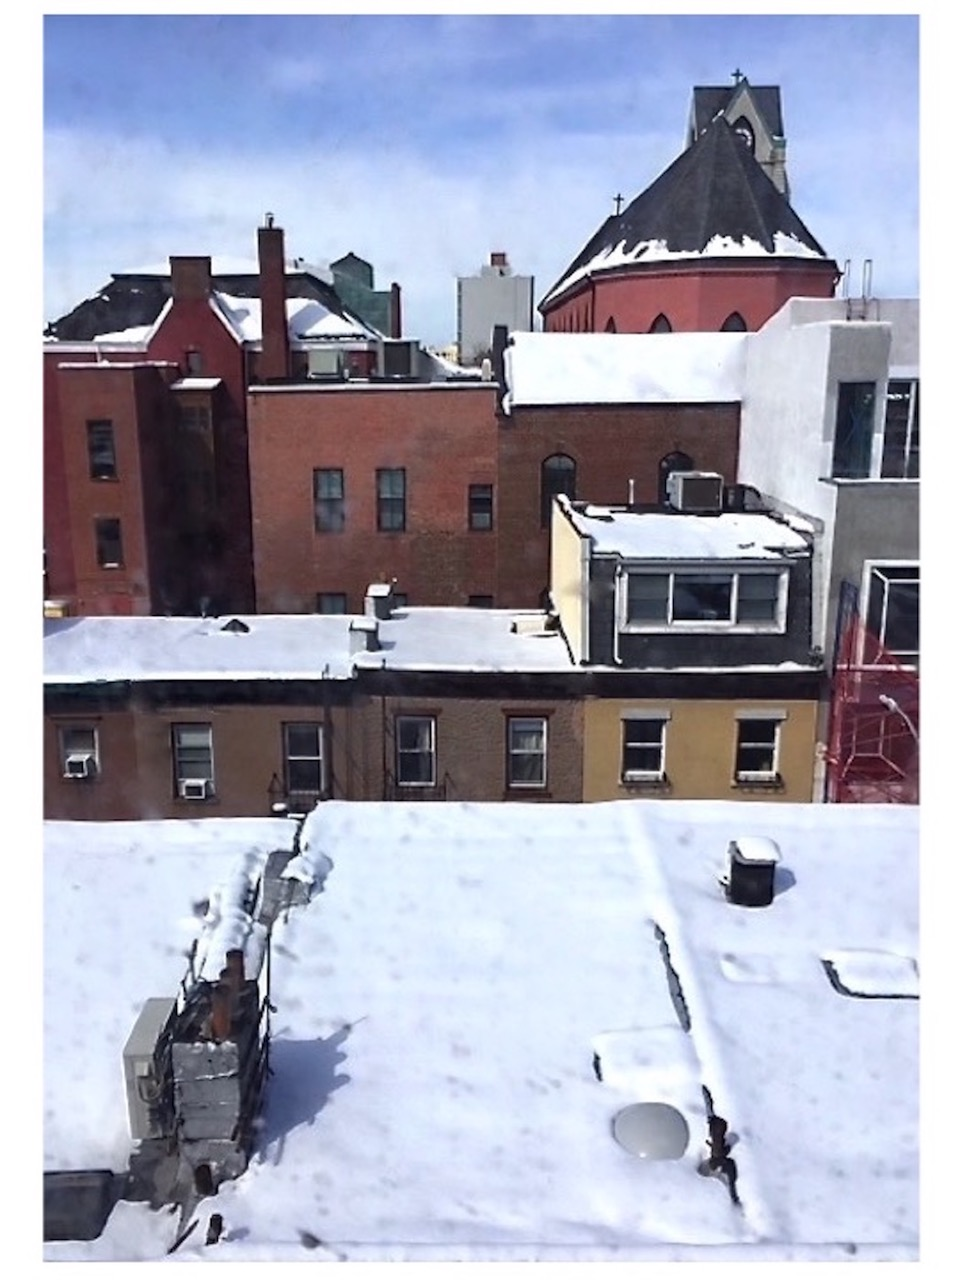 View from Snowy Roofs.jpg